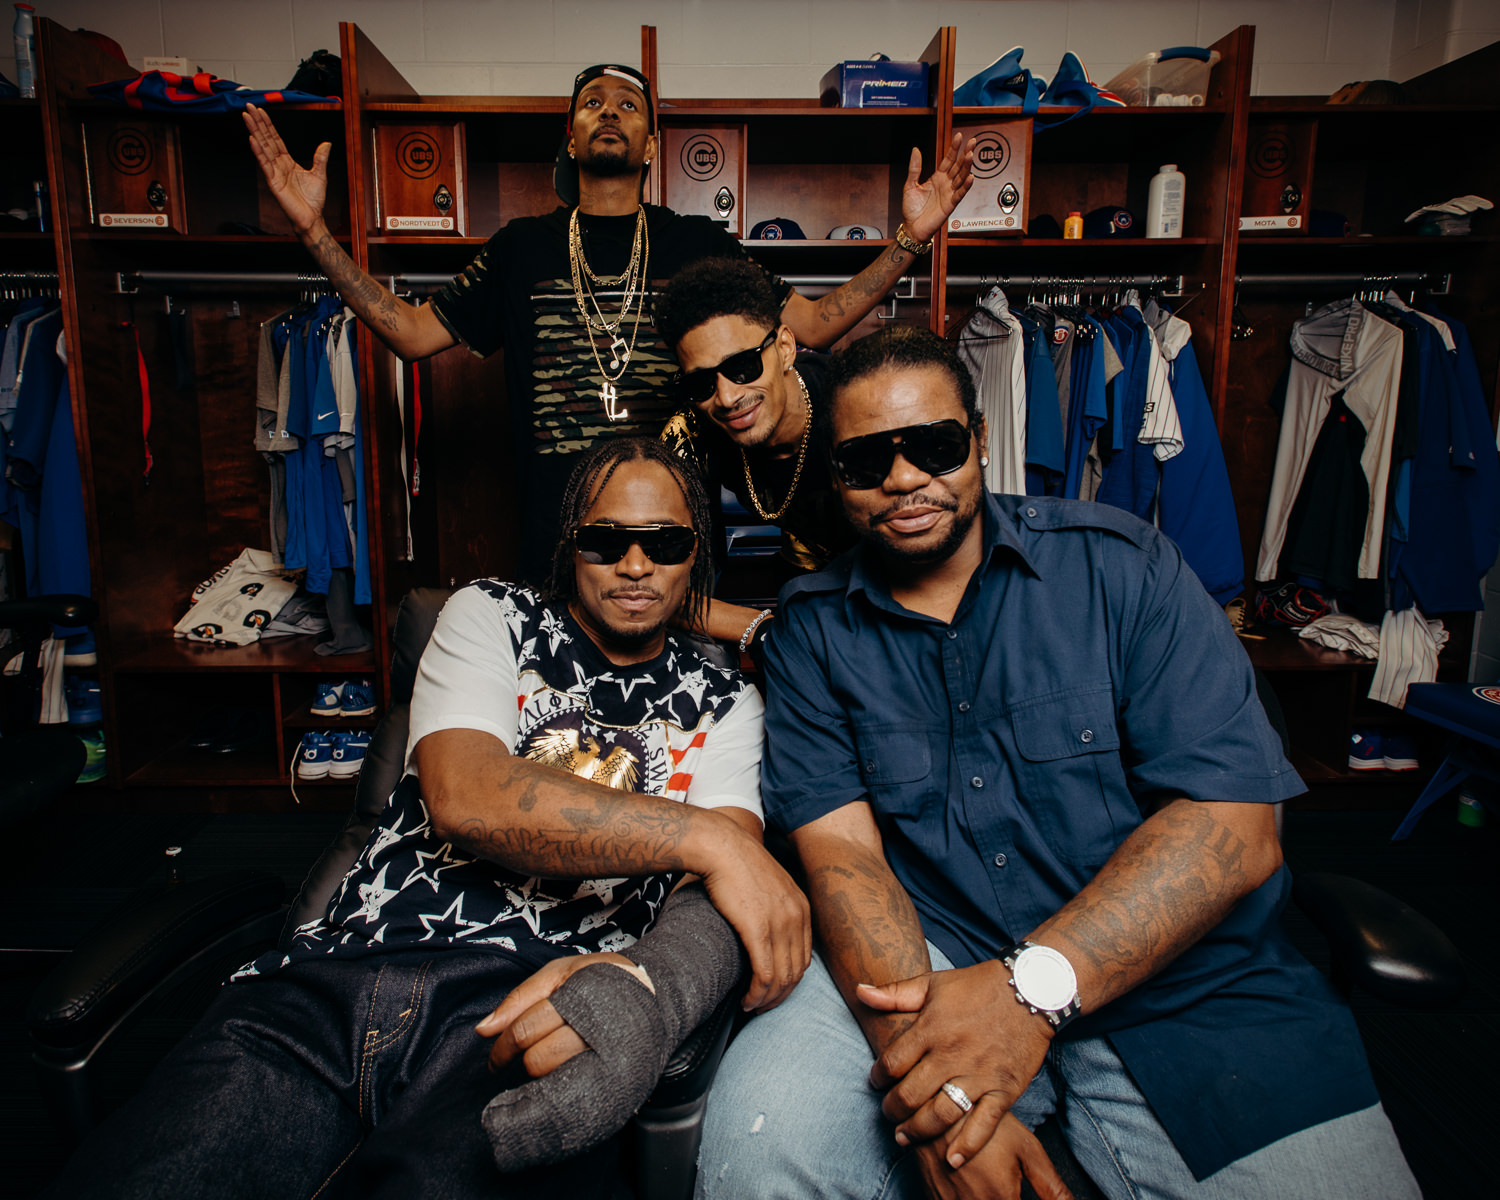 Bone Thugs-08.20.17-South Bend-web-355.jpg